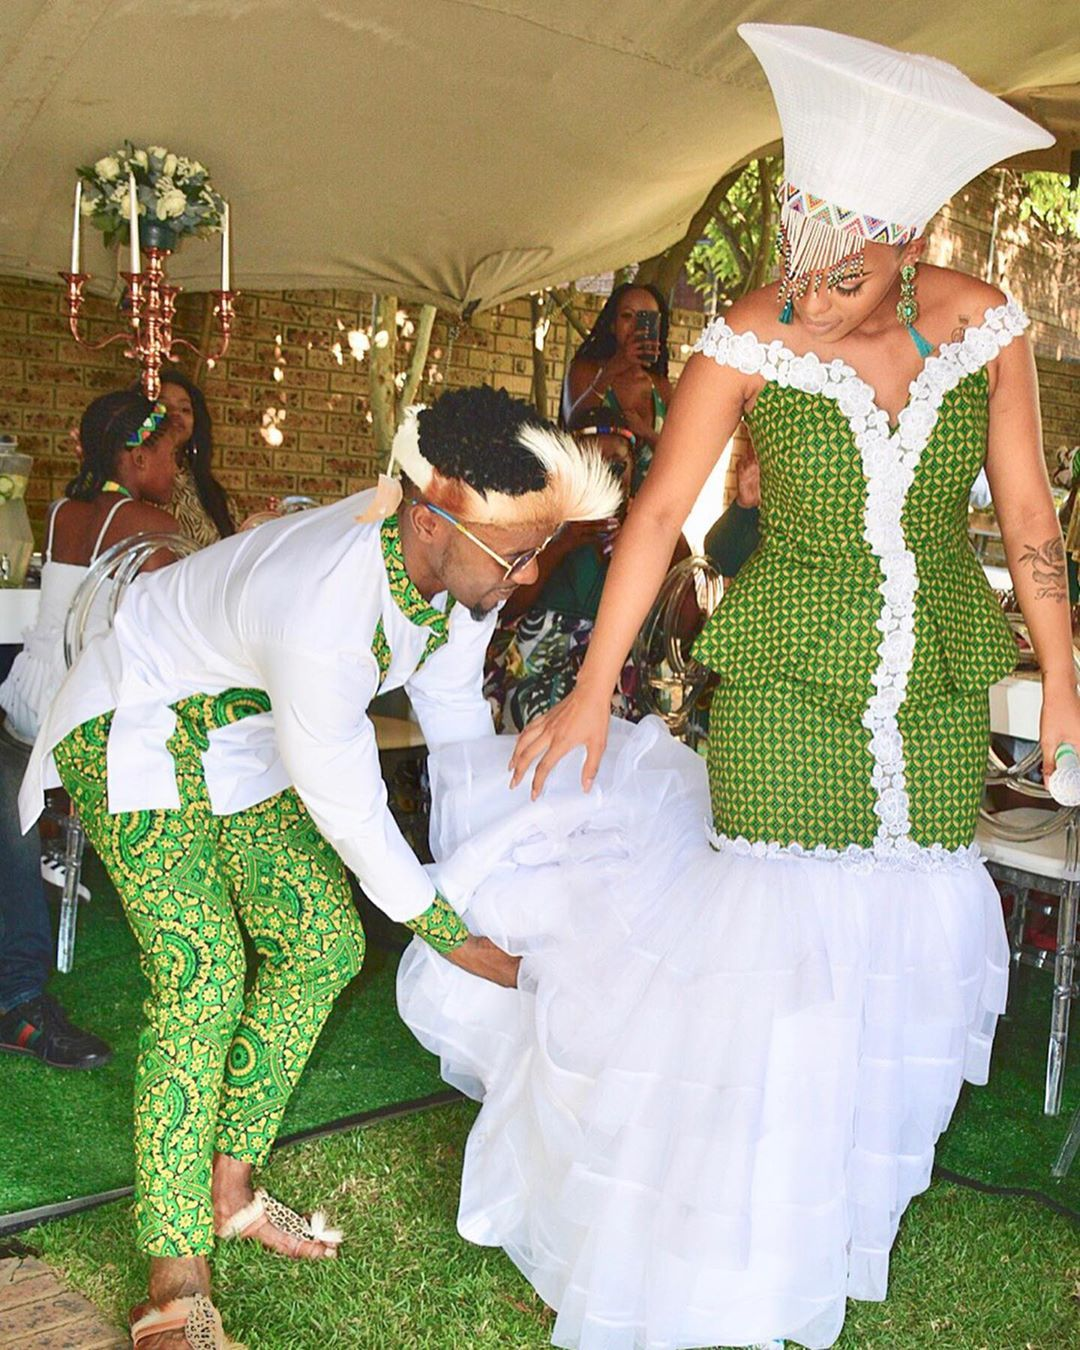 [Image Description: A newly-wed couple dressed in green traditional outfits for their ceremony. The groom fixes his wifes train.] via Abdul Khoza